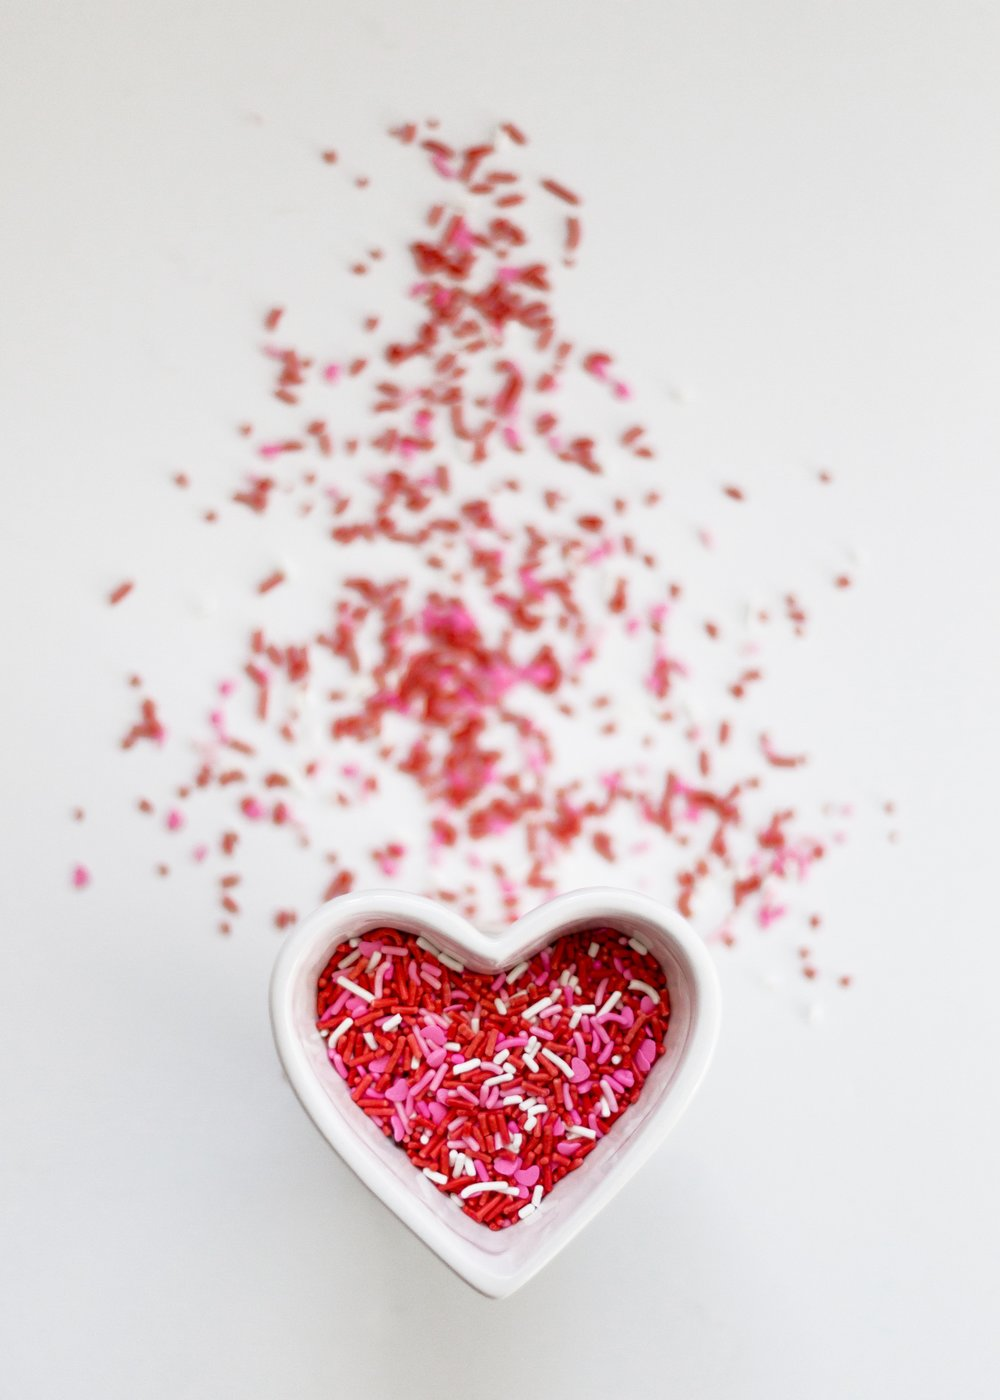 083f10e8f1 4 Ways To Show Your Love This Valentine's Day